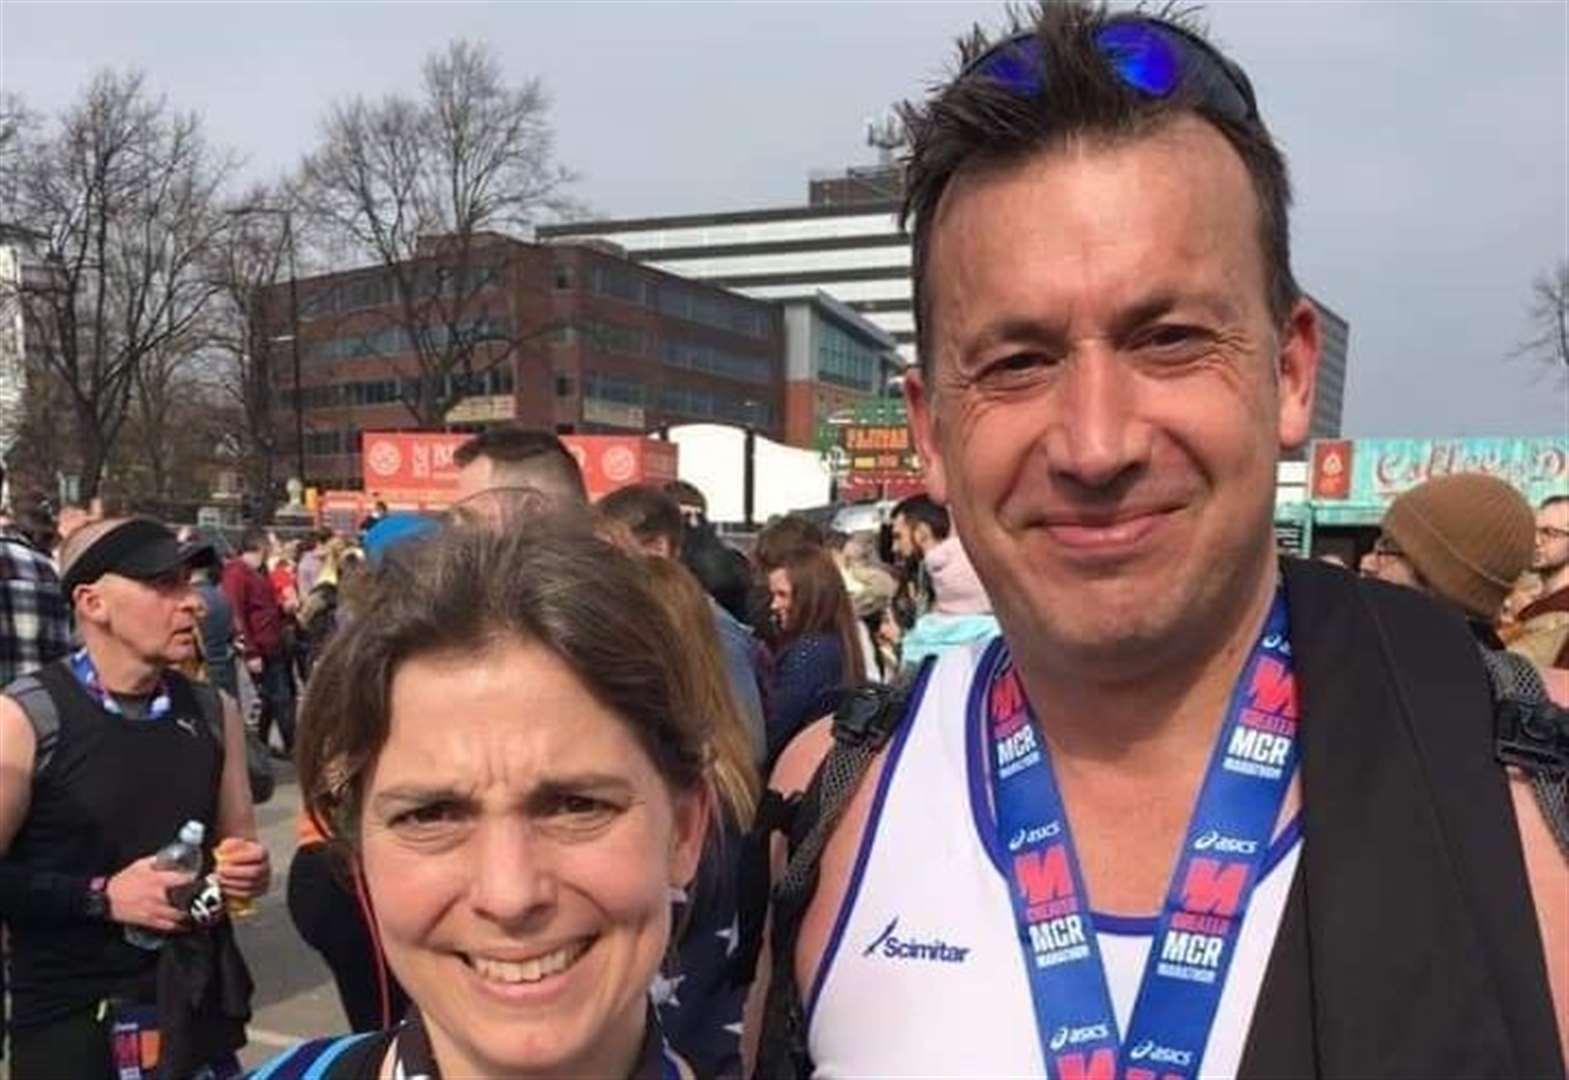 Wisbech Fenland Running Club's Steve Bennington and Lucy Hicks shine on ASICS Greater Manchester Marathon debuts